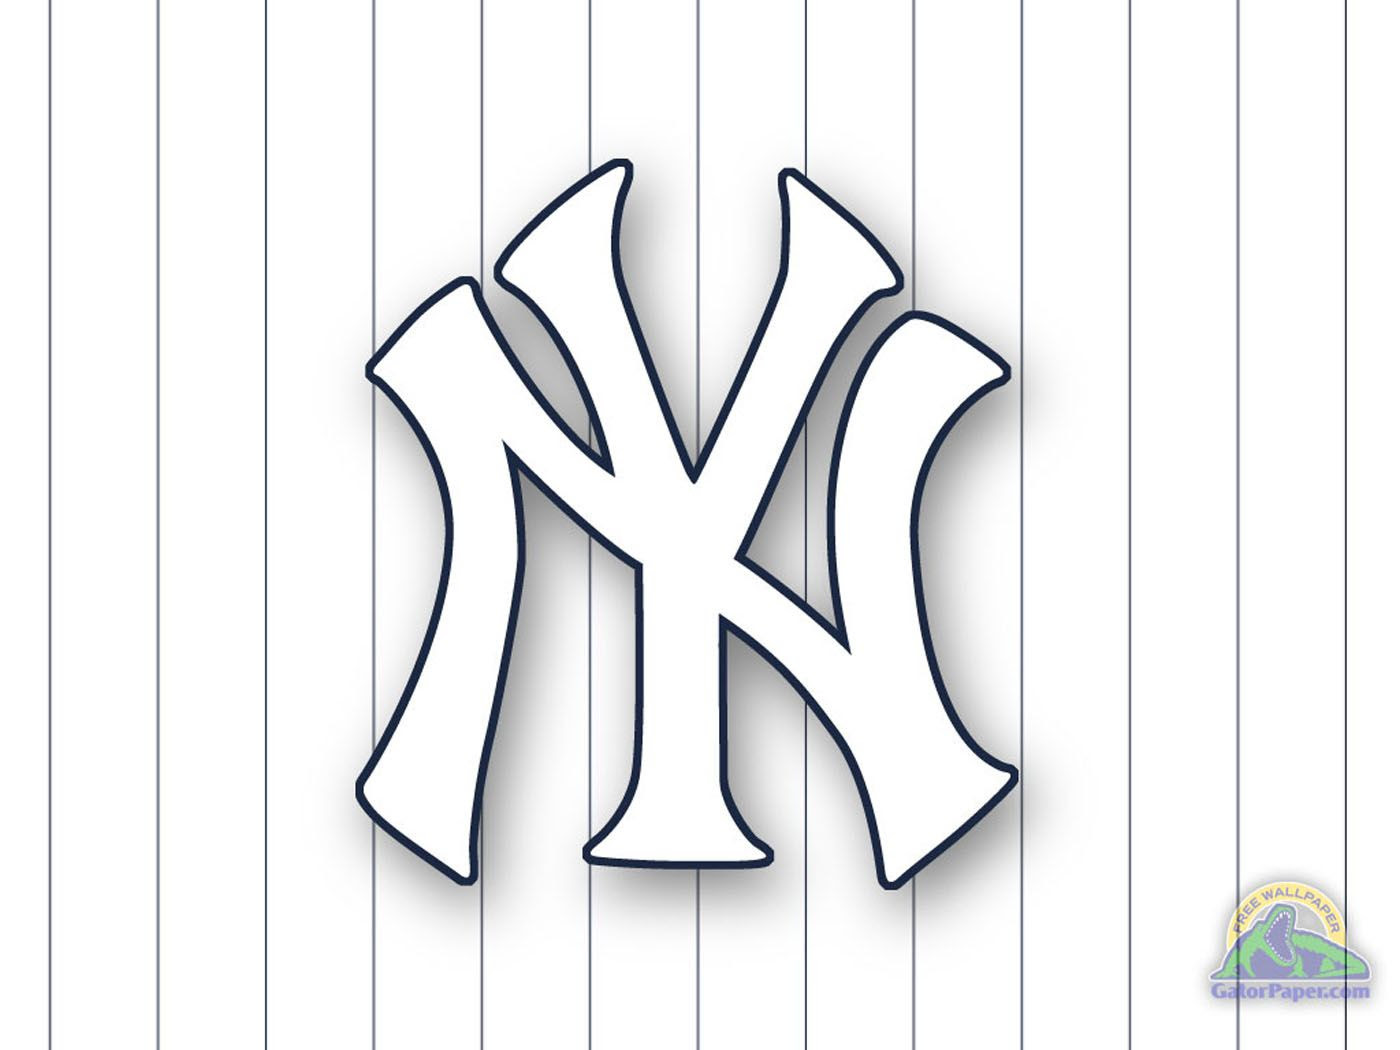 Free Yankees Wallpaper Sf Wallpaper